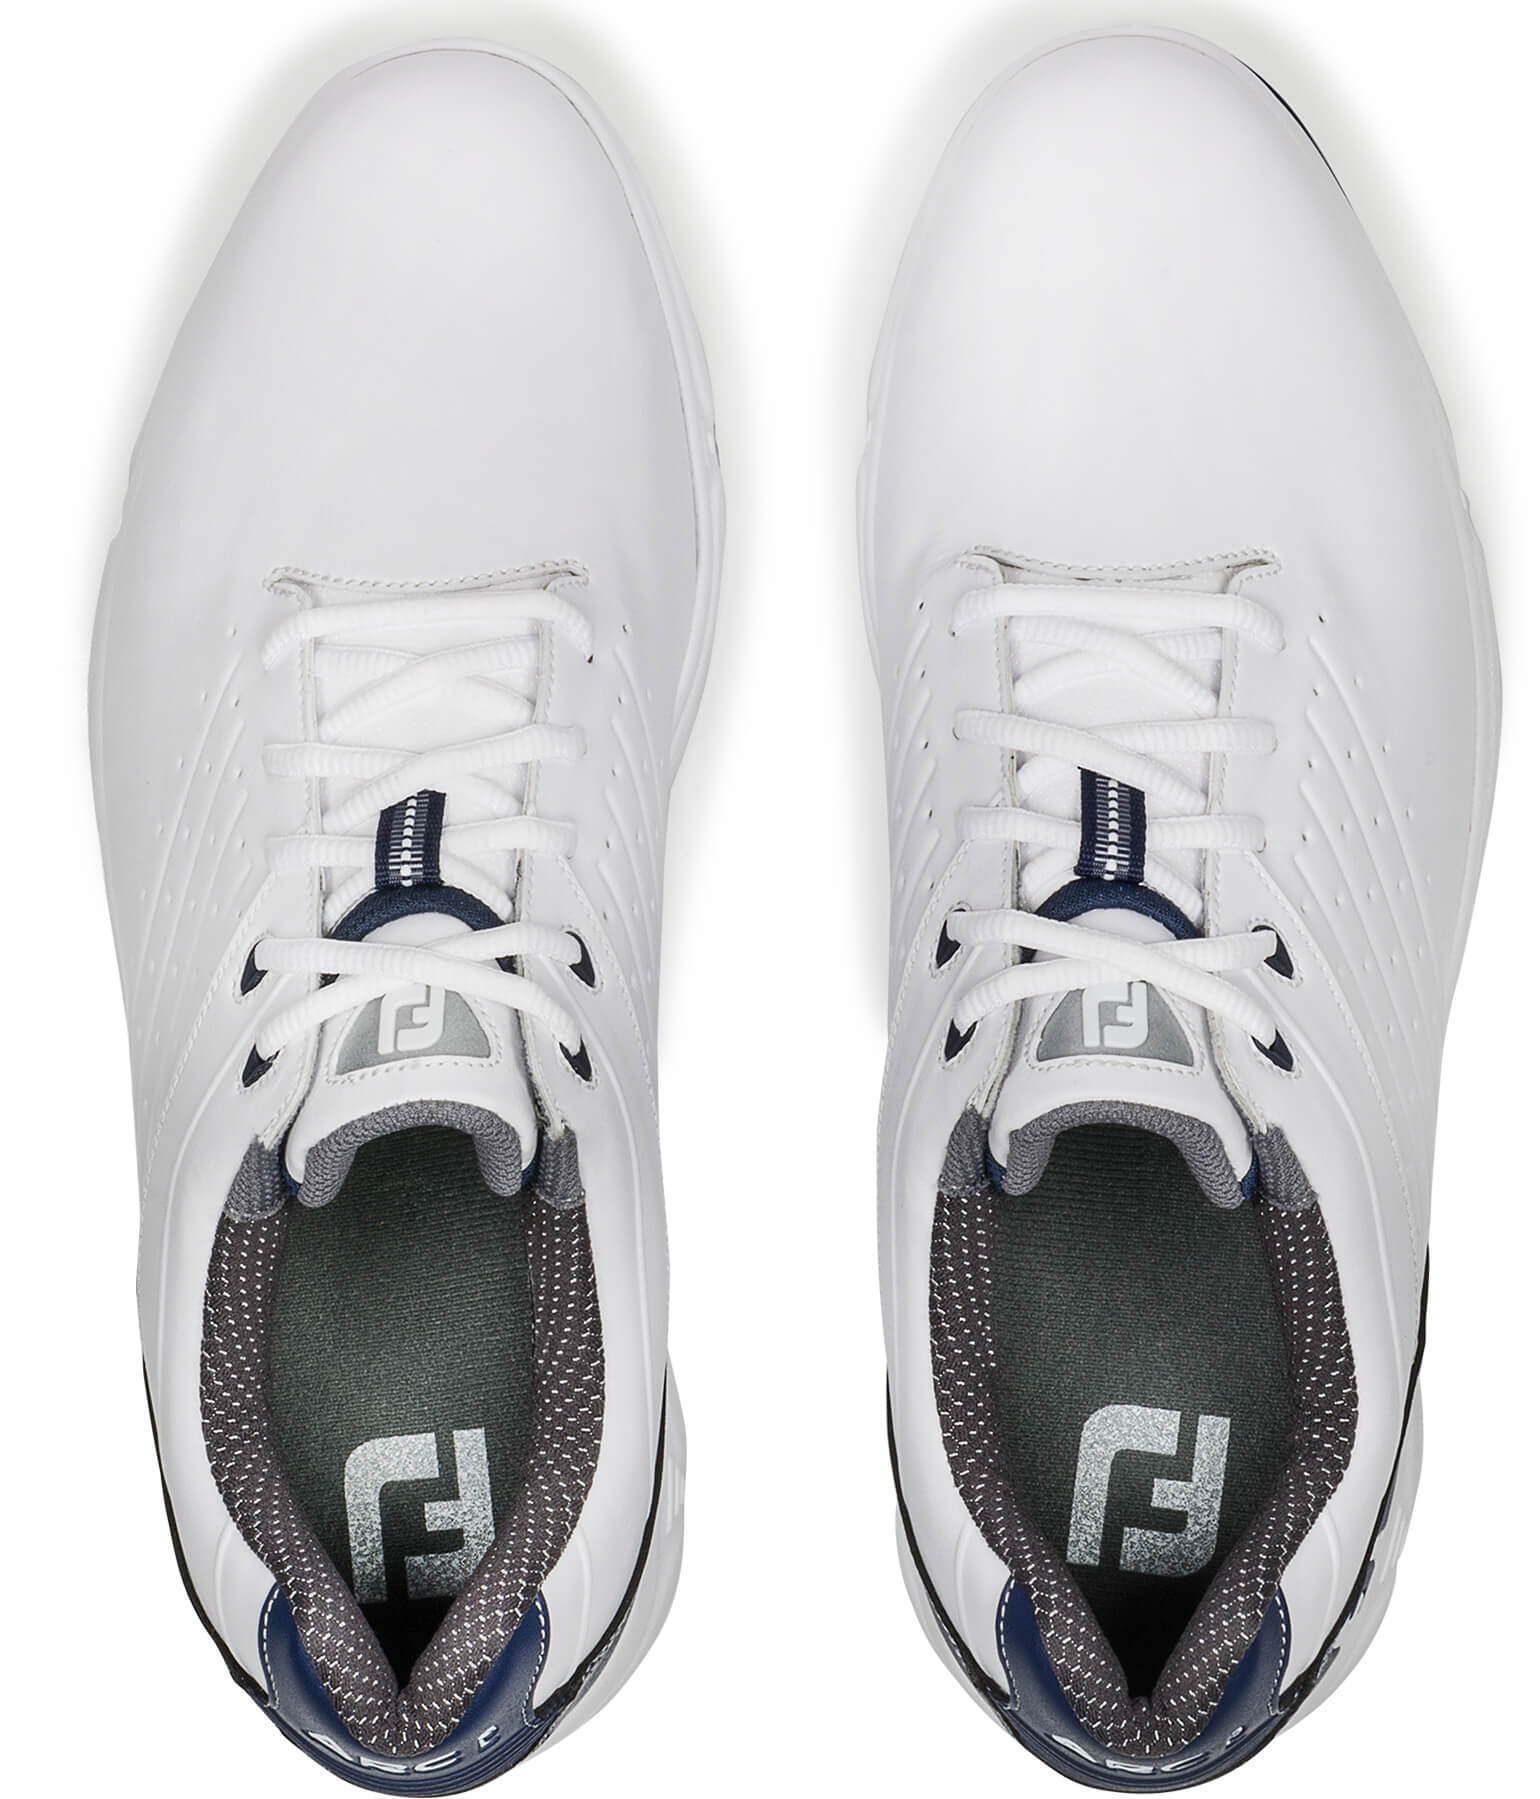 FootJoy-FJ-Arc-SL-Golf-Shoes-Men-039-s-Spikeless-Waterproof-New-Choose-color thumbnail 12